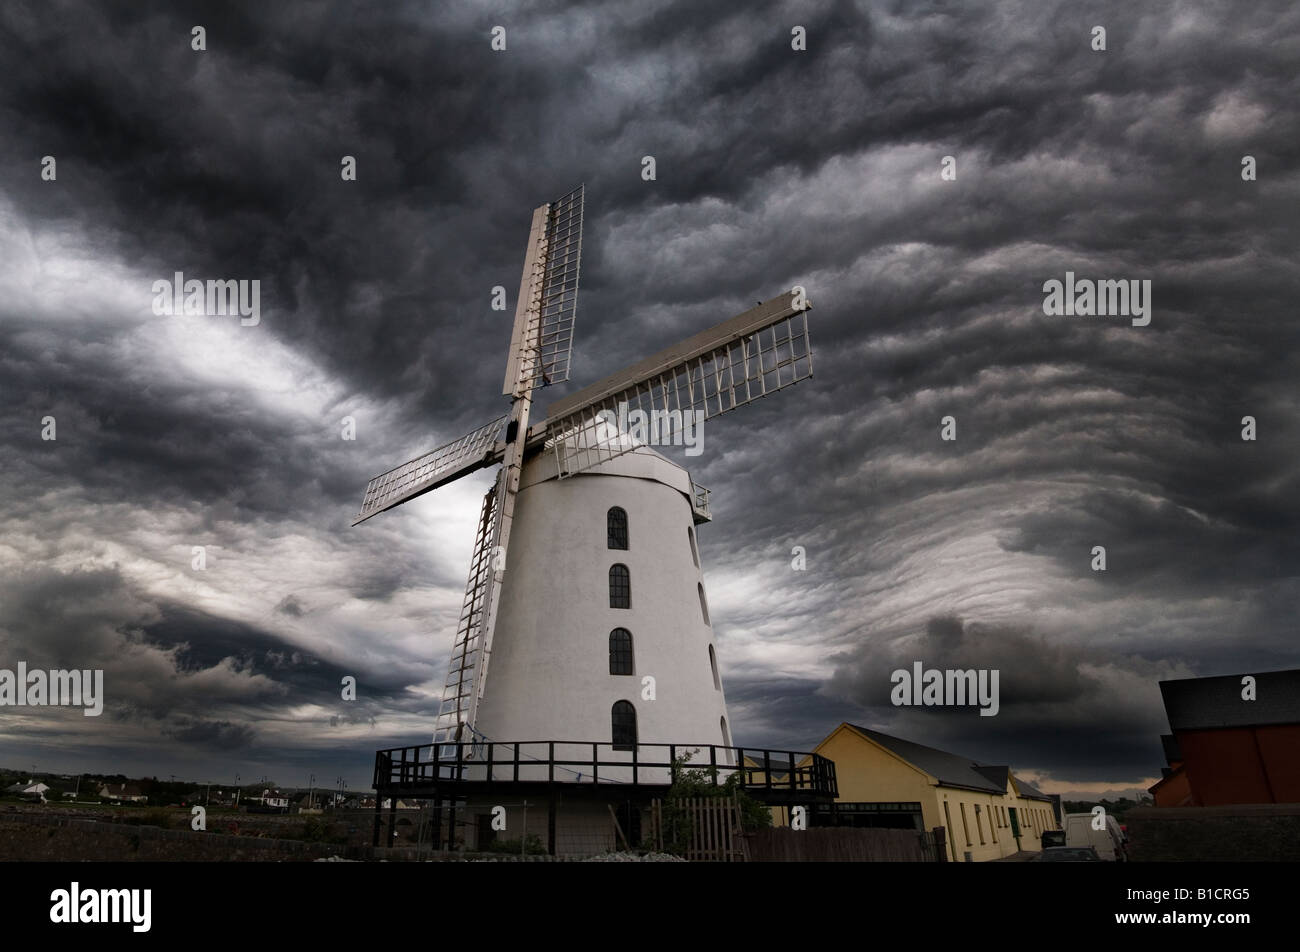 Gravity wave cloud formation behind Blennerville Windmill in Tralee. - Stock Image